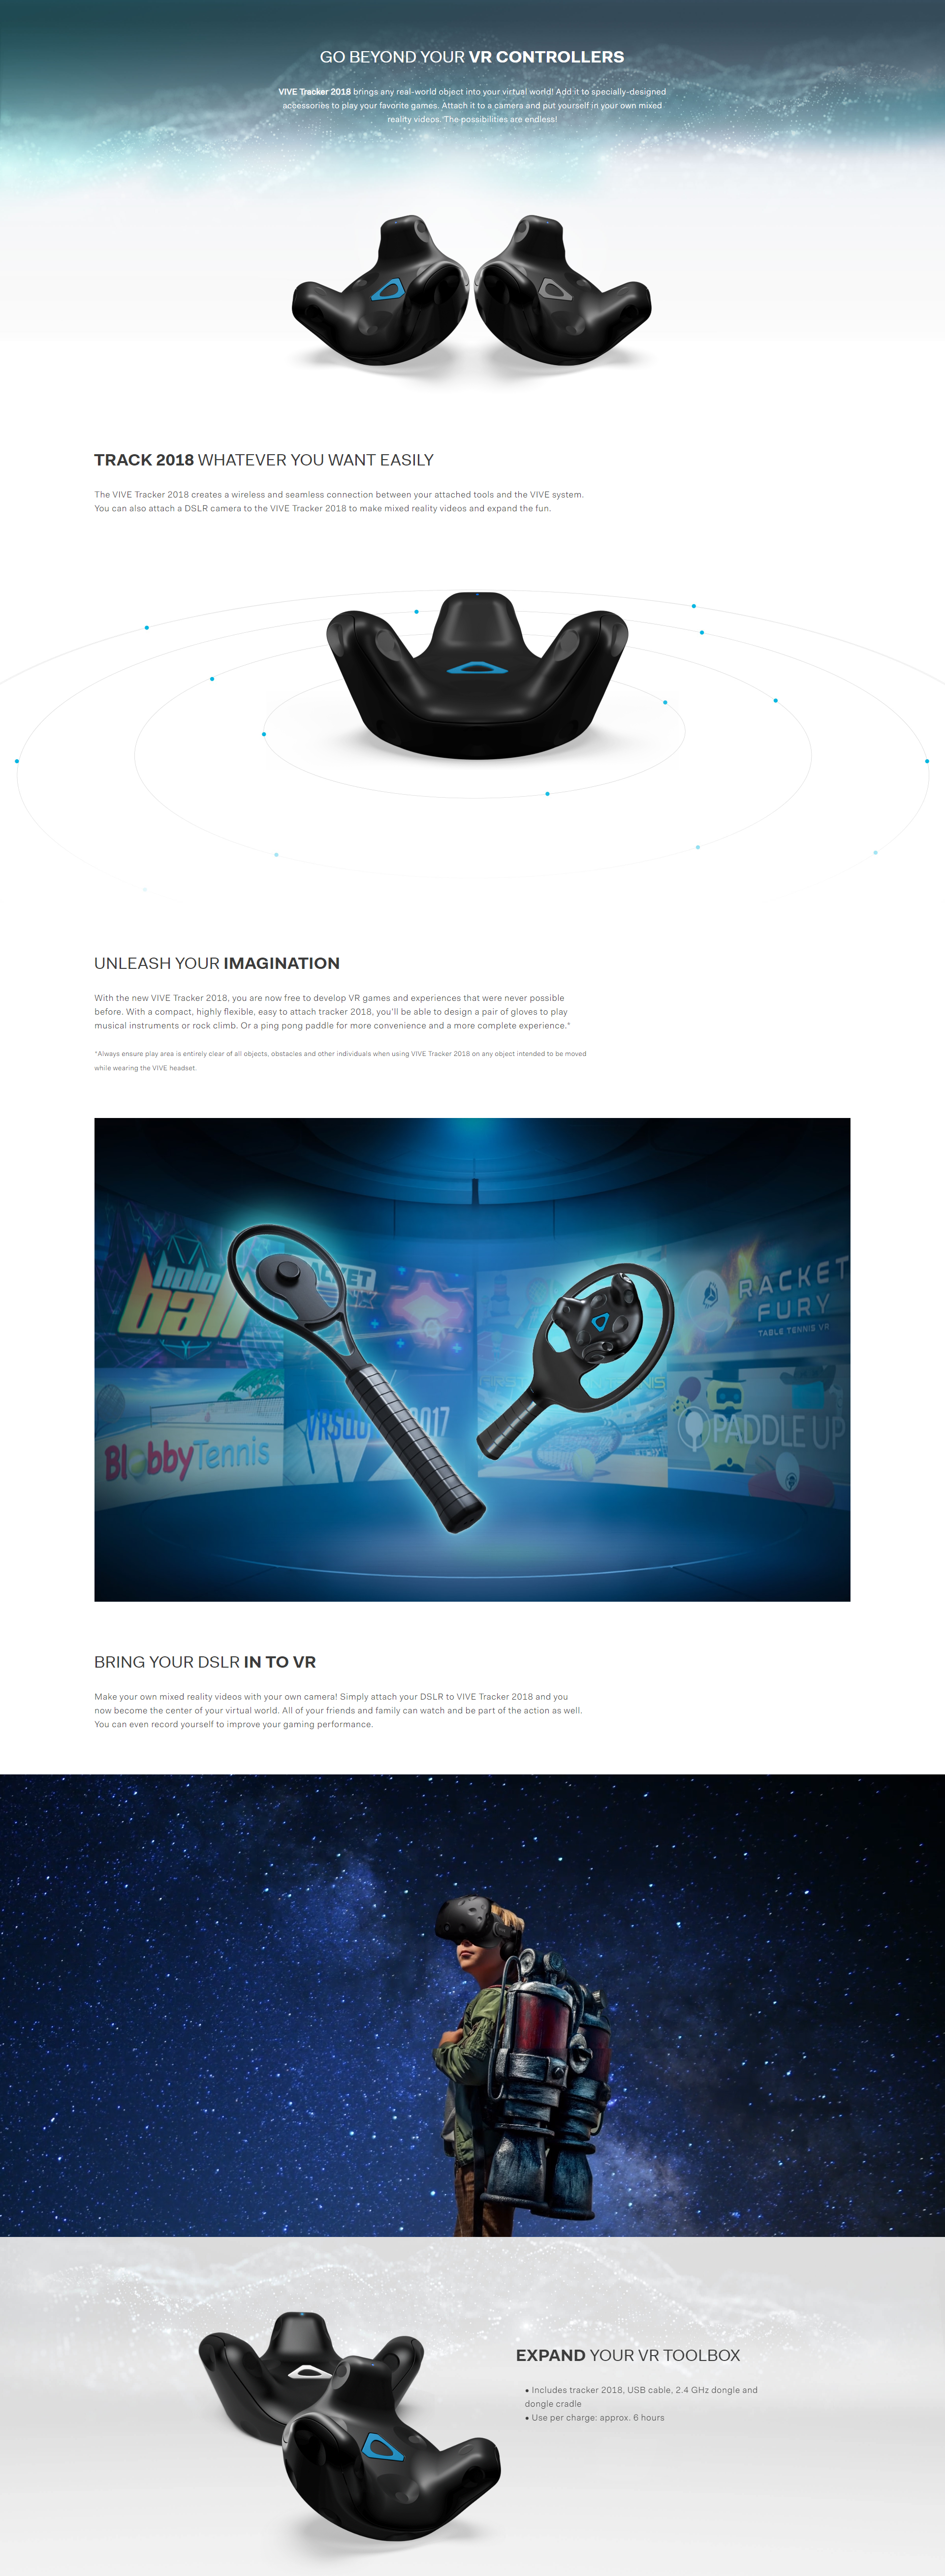 A large marketing image providing additional information about the product HTC VIVE Tracker 2018 - Additional alt info not provided